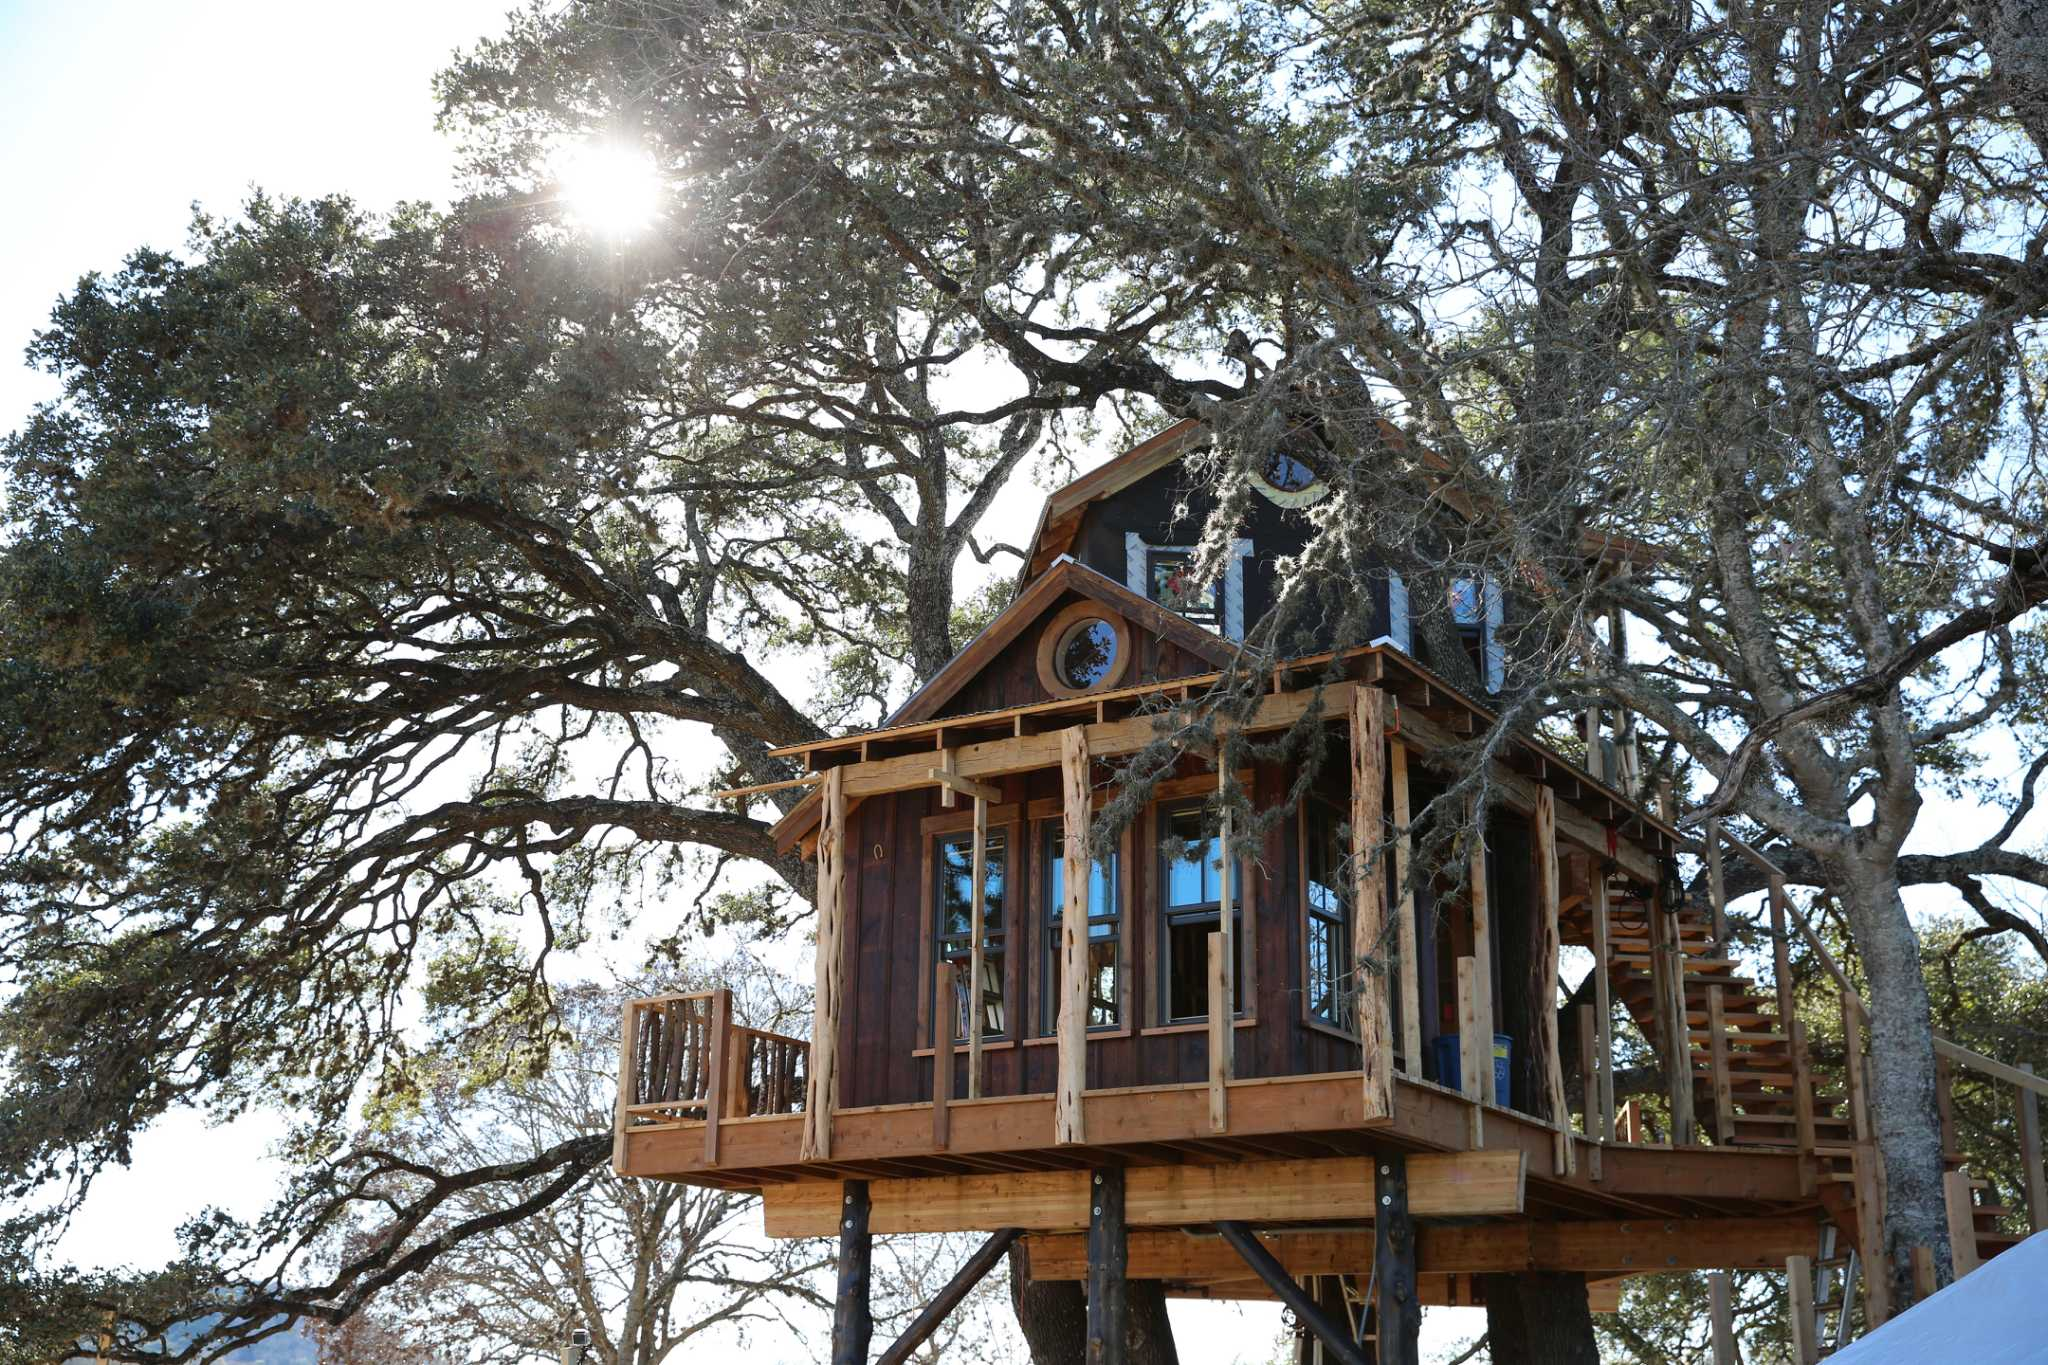 TV Tonight: 'Treehouse Masters' Builds Hill Country